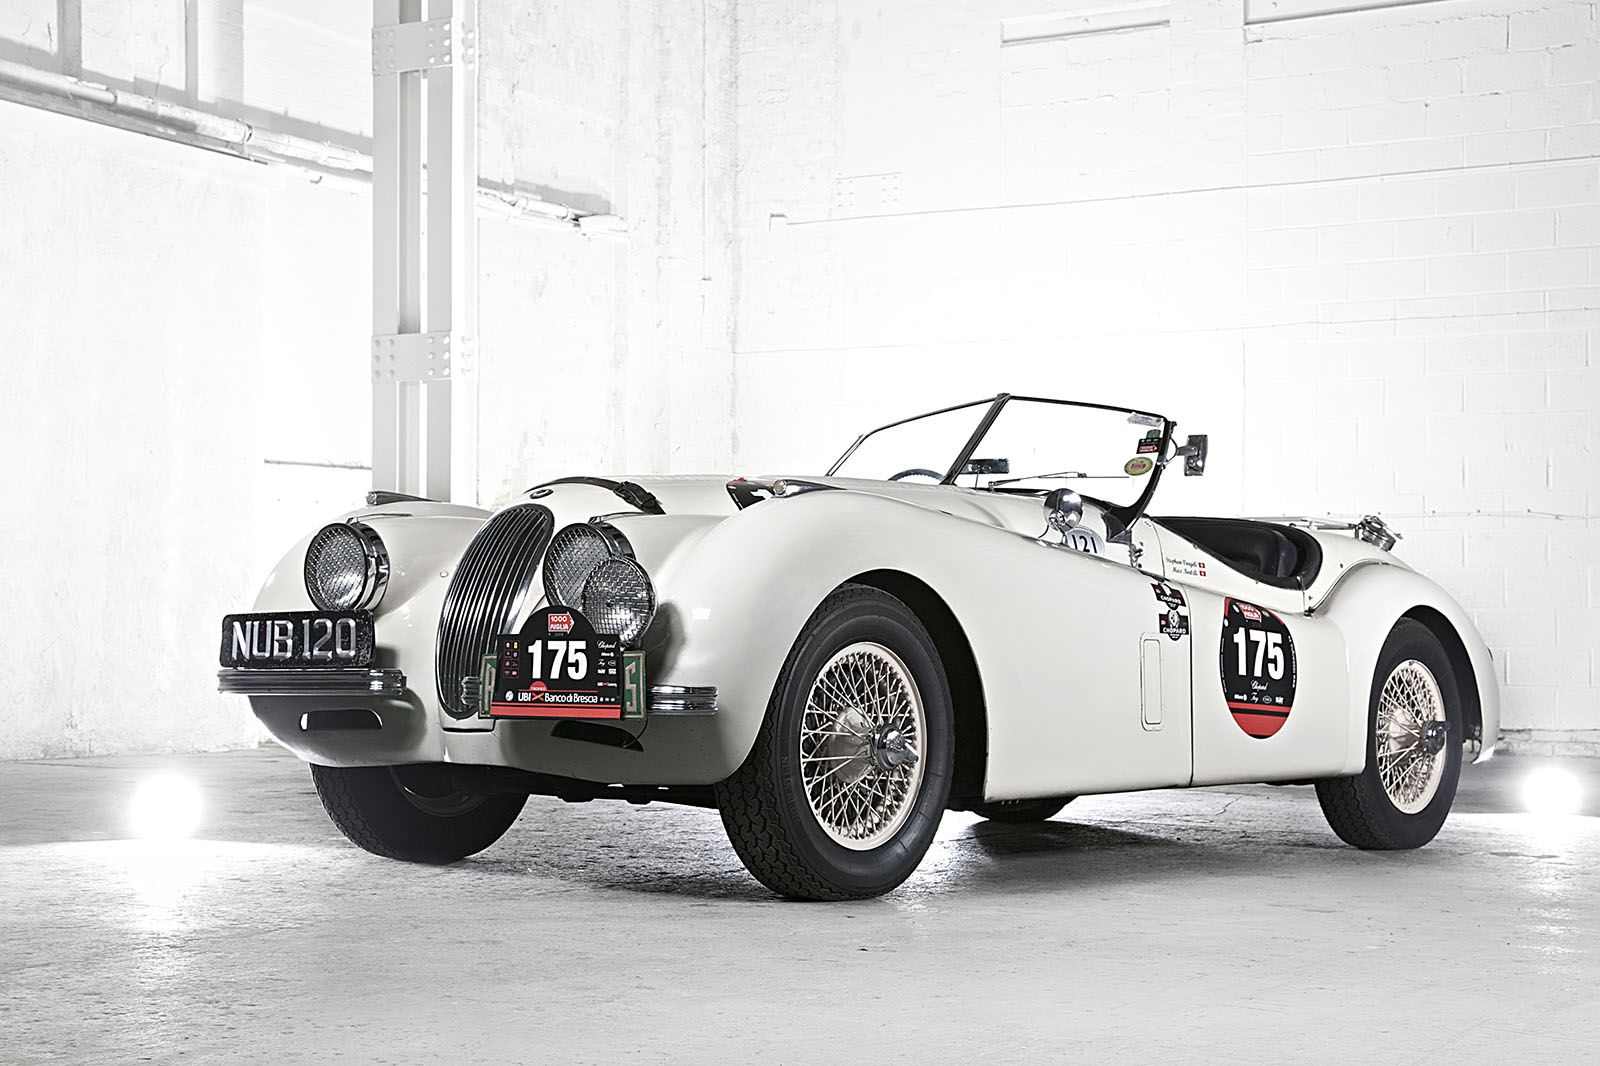 39 cars that changed the world | Autocar